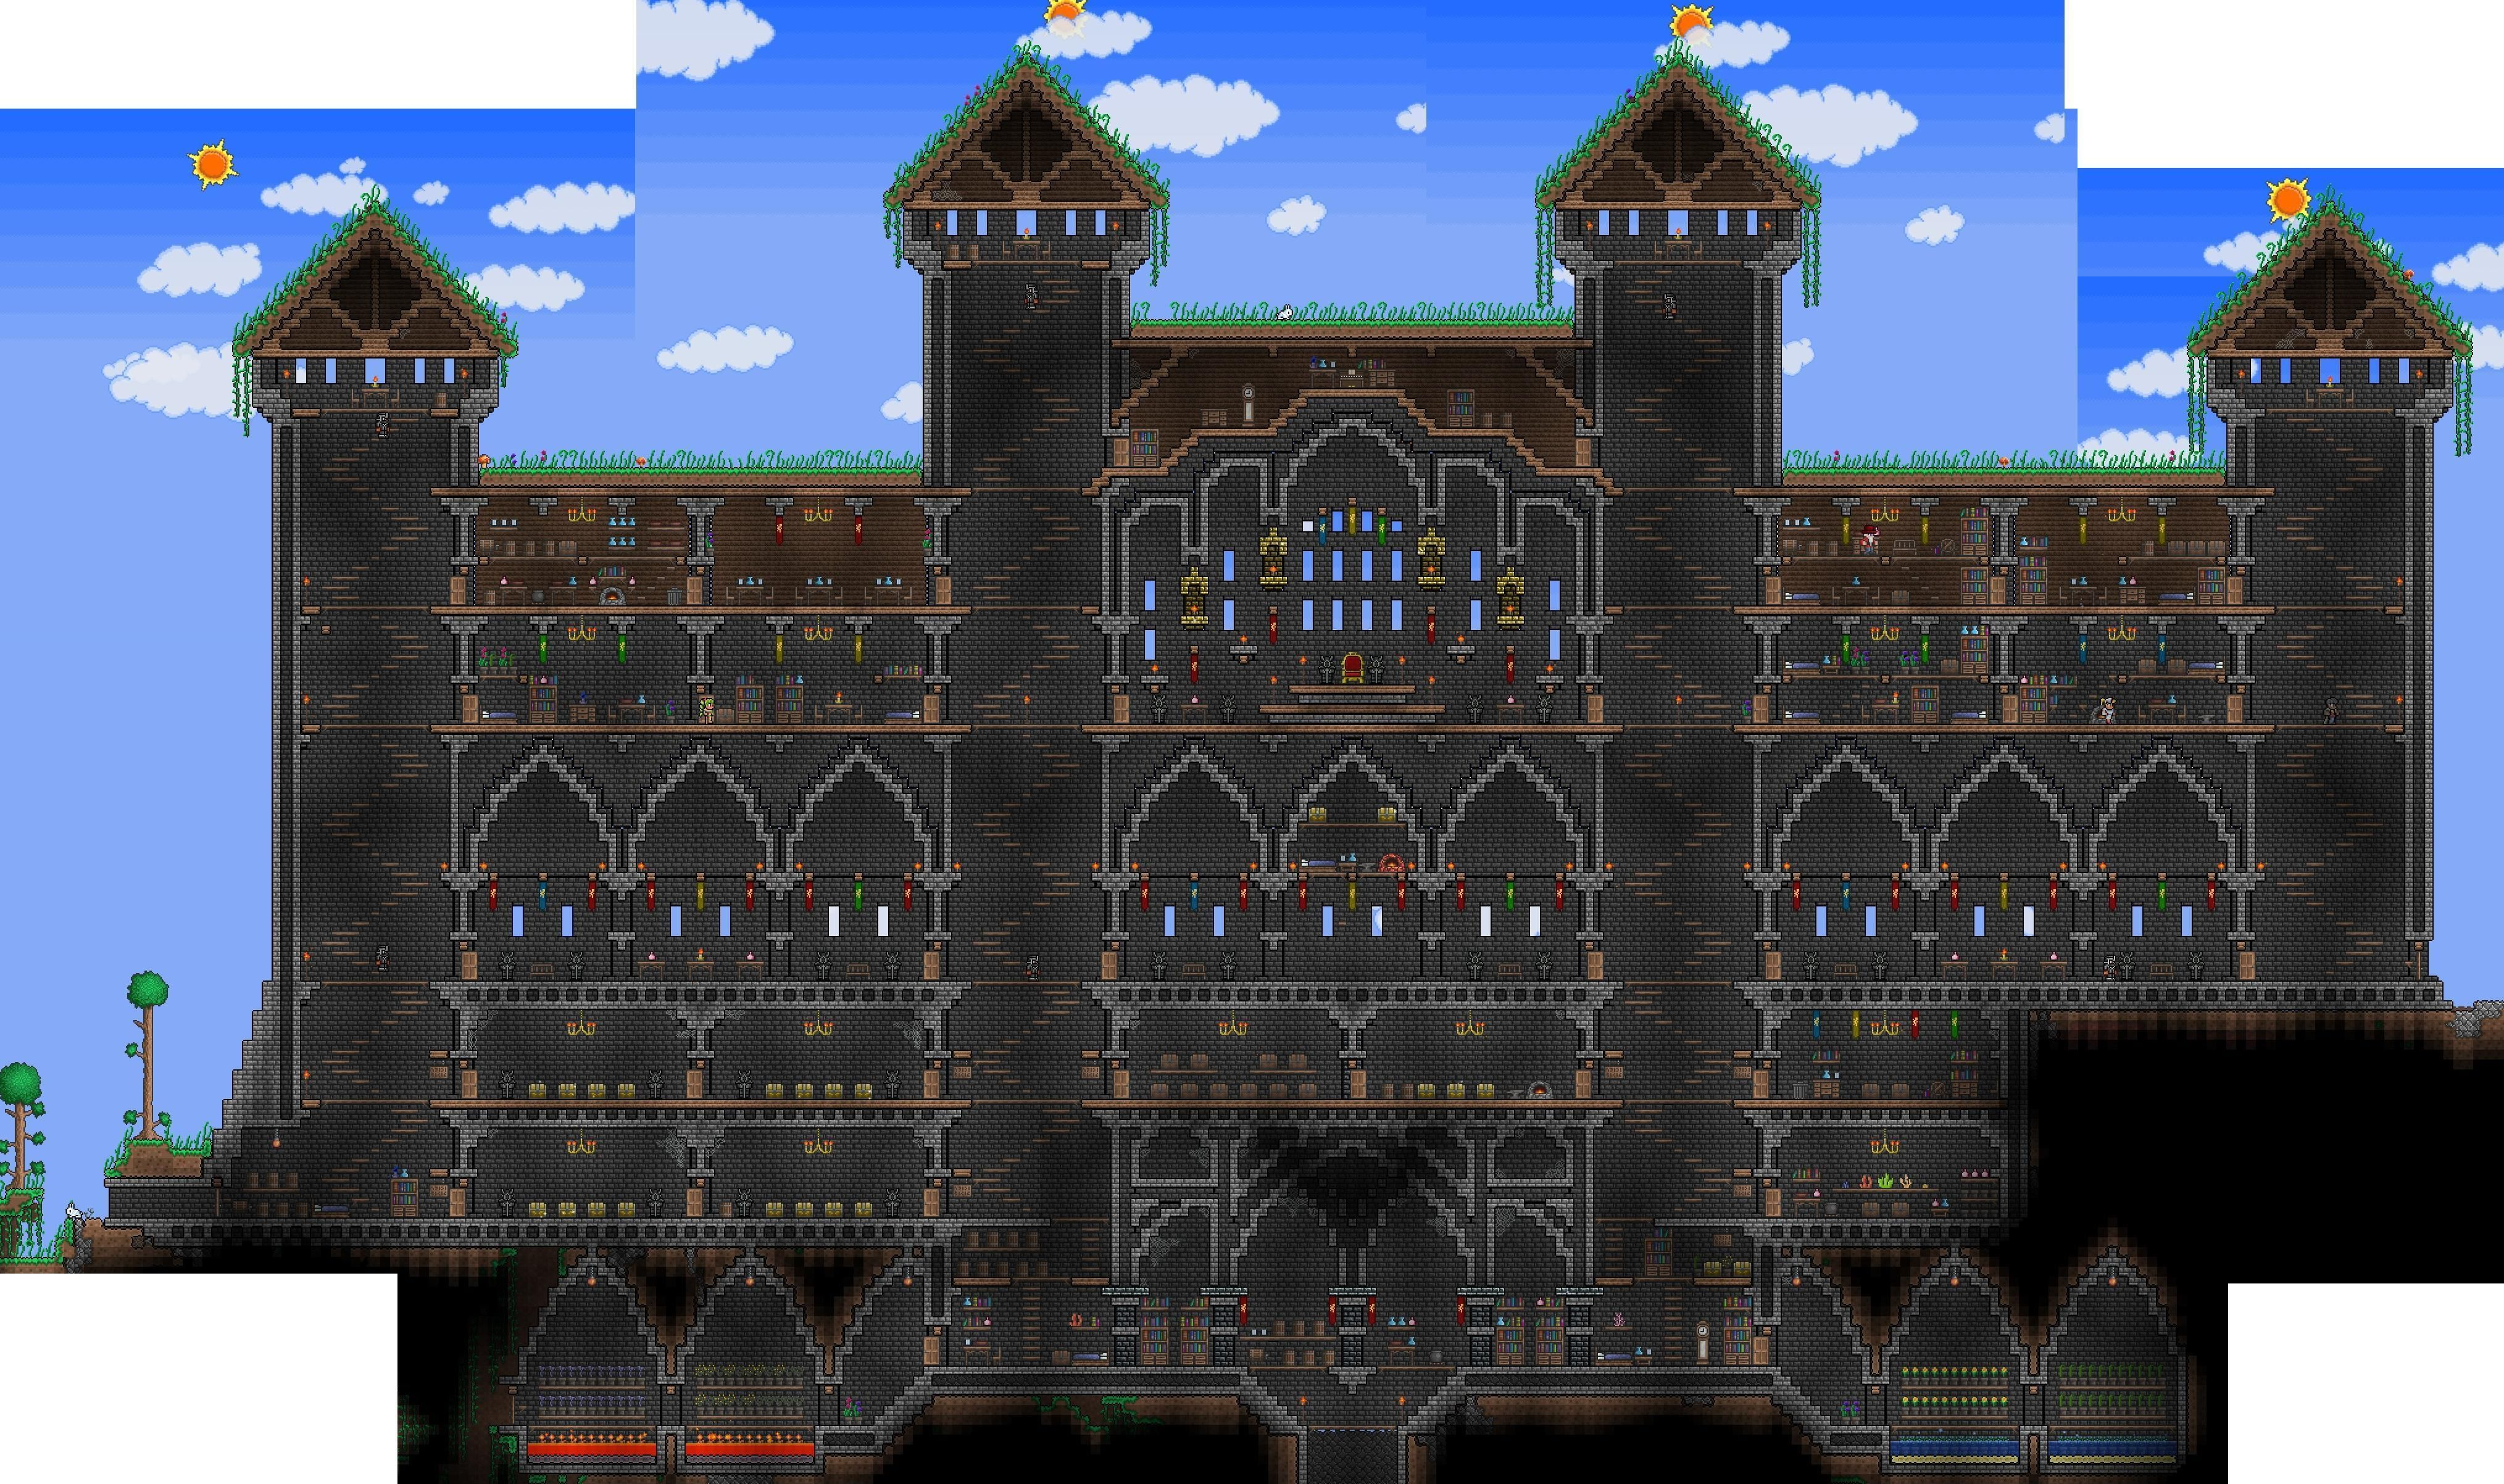 Terraria house? More like terraria mansion  I did not build